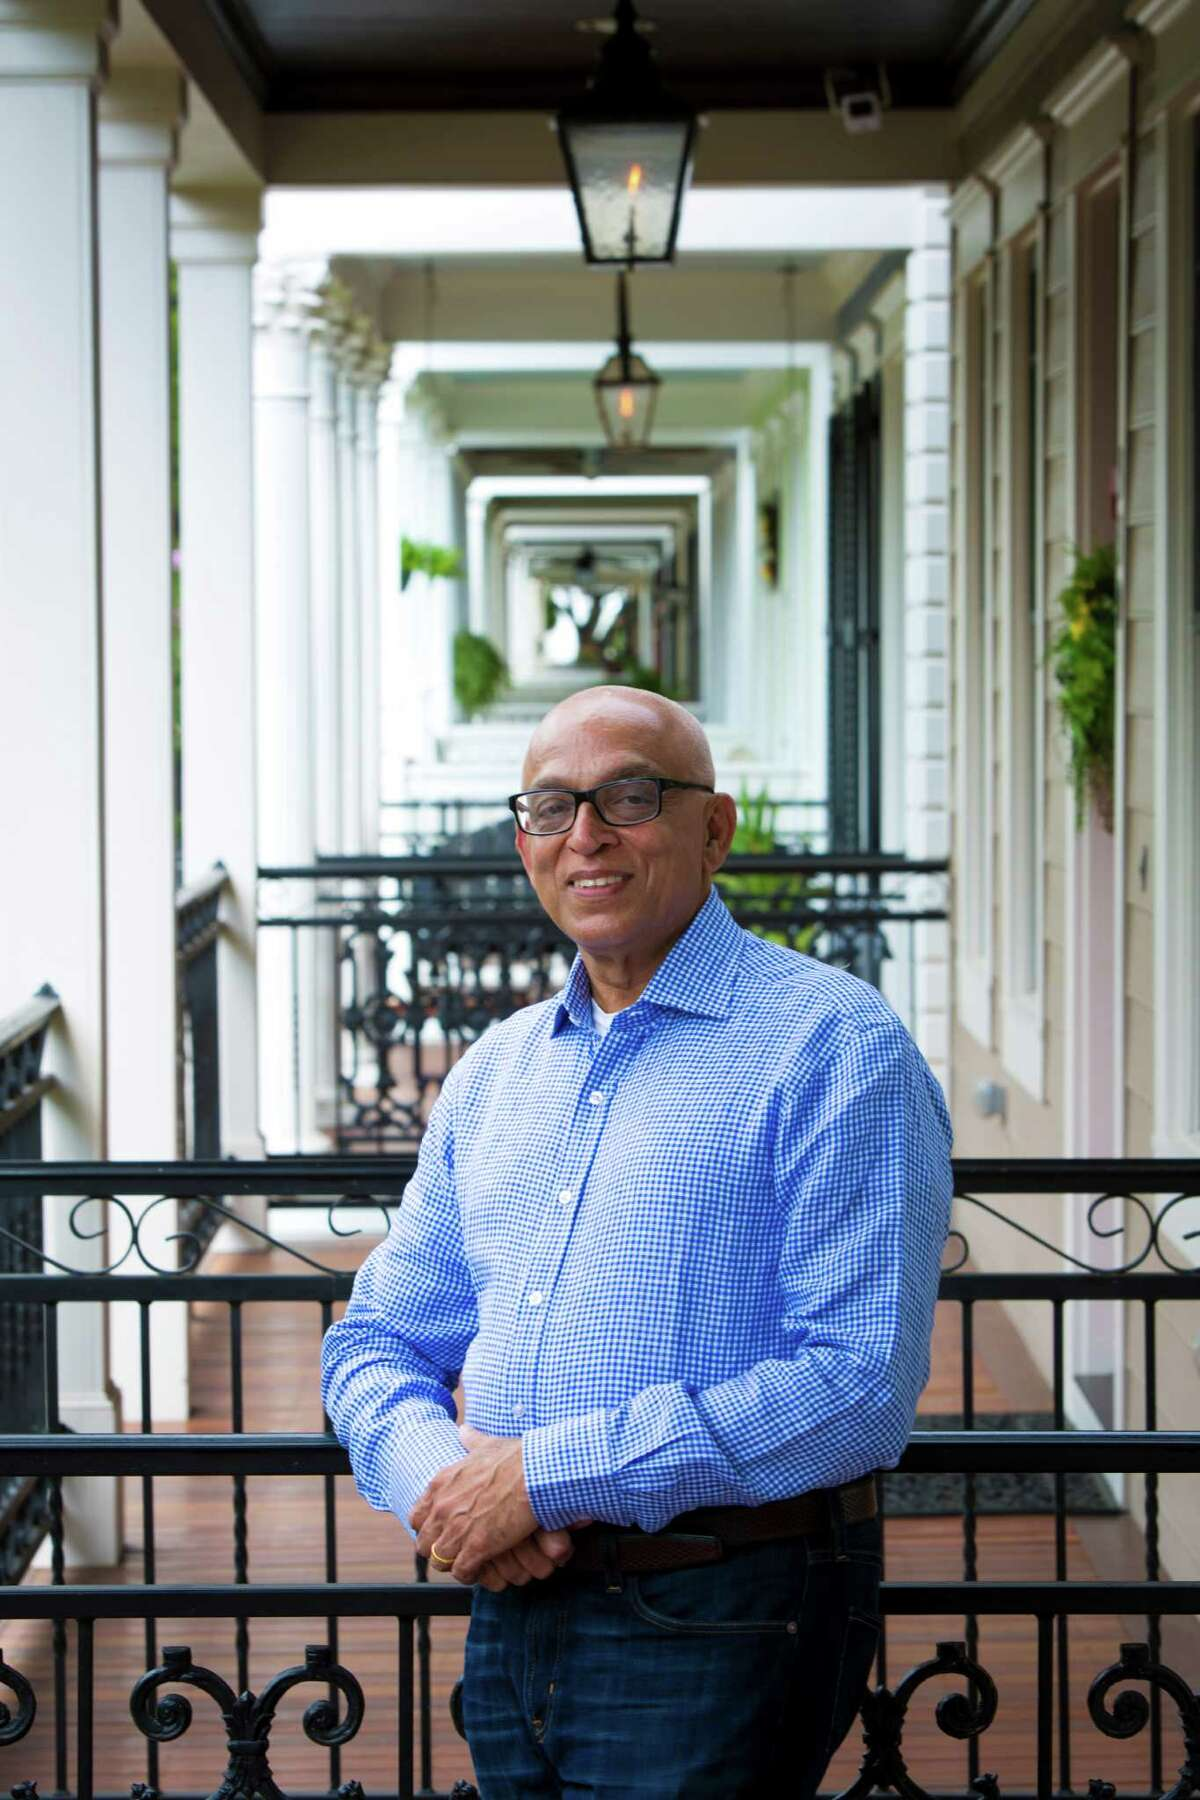 Prasad Menon founded Bayou Microfund, a non-profit designed to help local entrepreneurs get small loans, which help them open or expand their businesses.